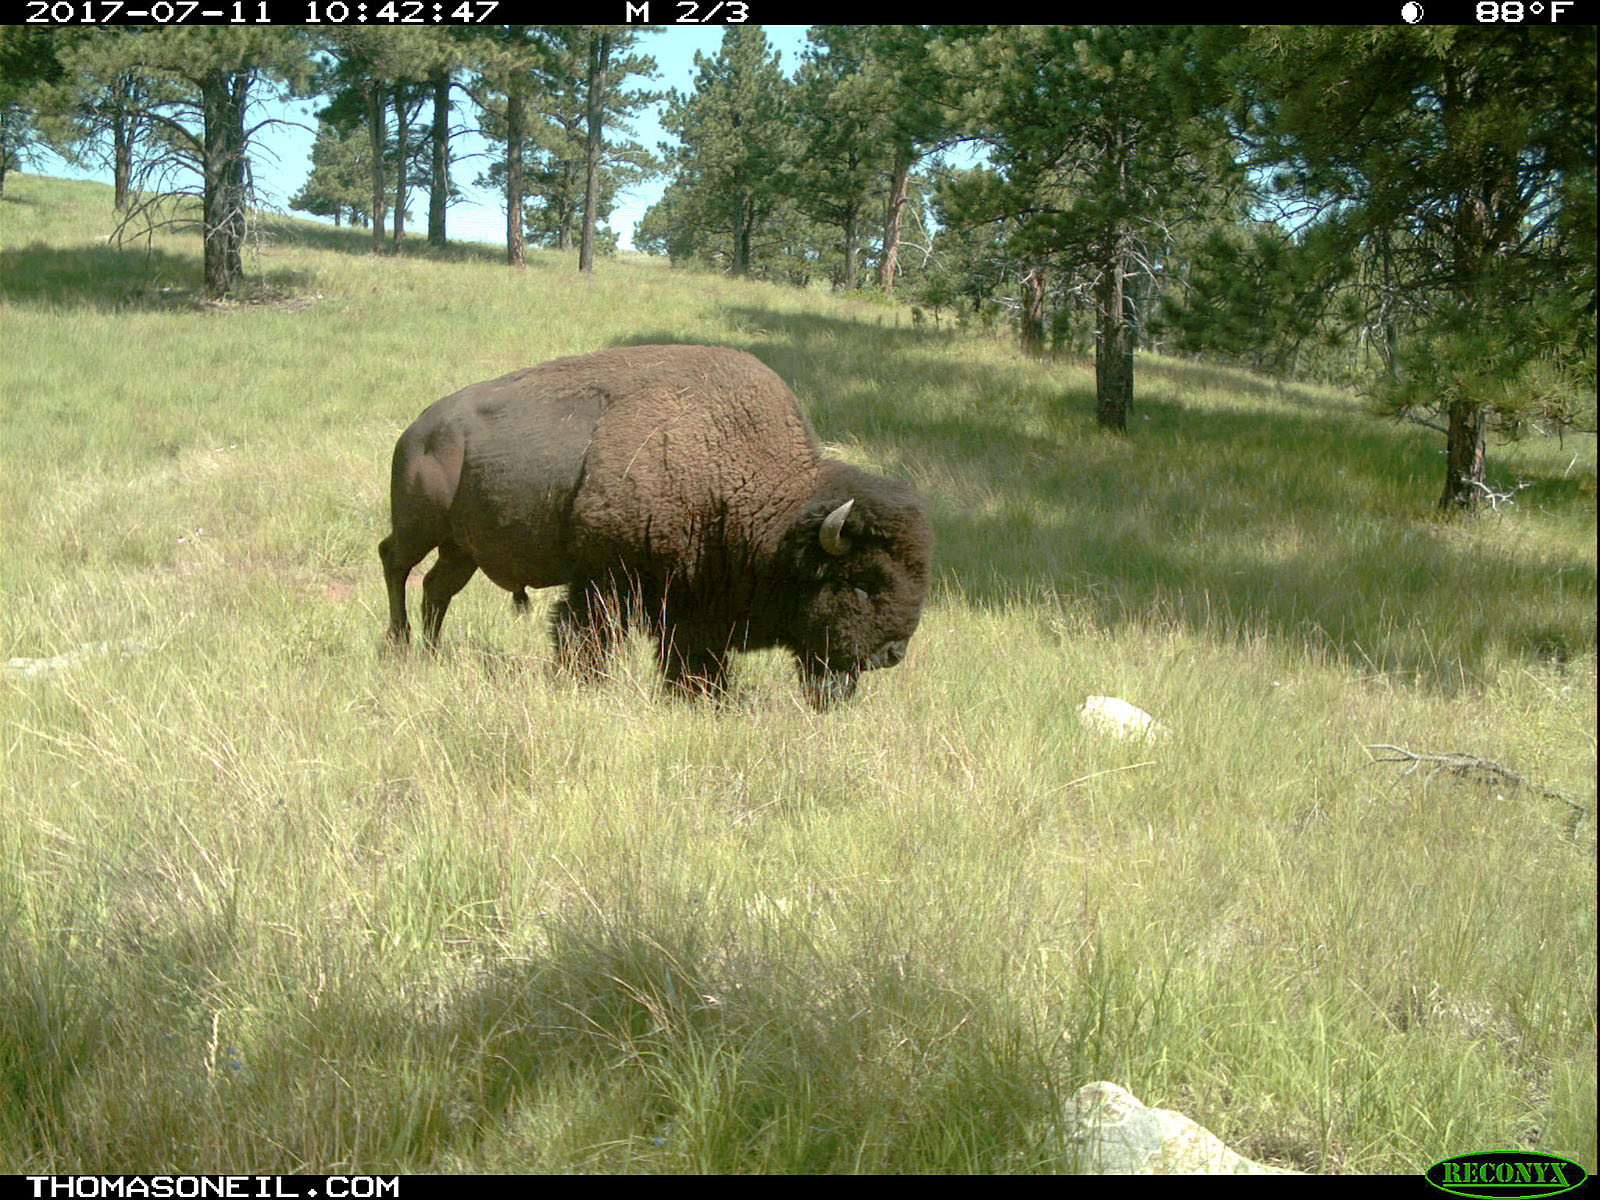 Bison staking out a grazing spot, July 11, 2017.